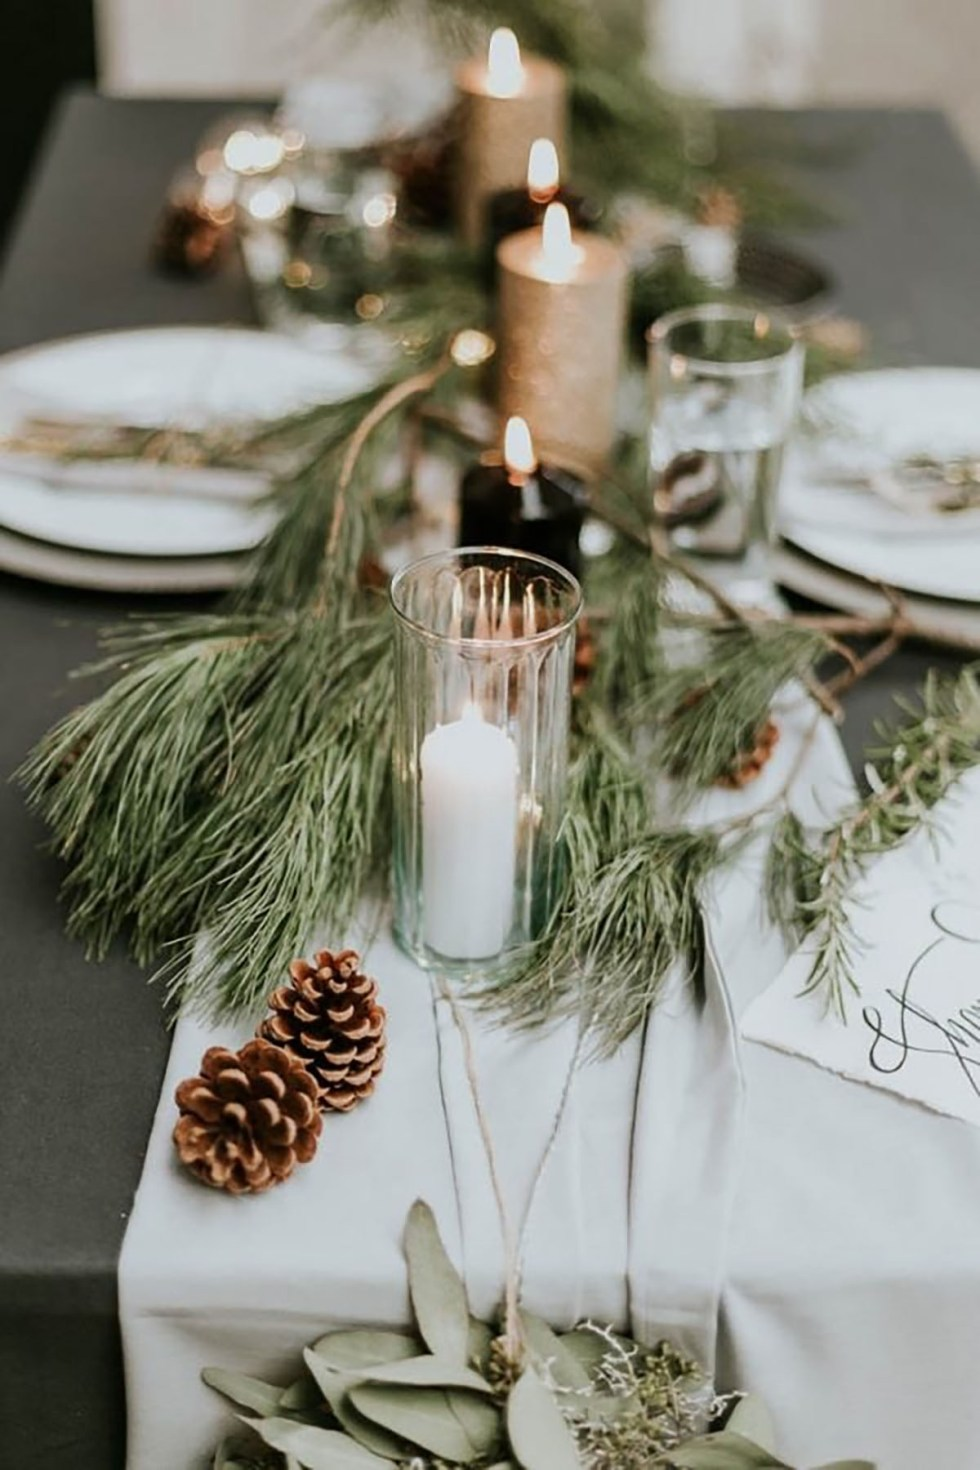 pinecone and pine needle table decor